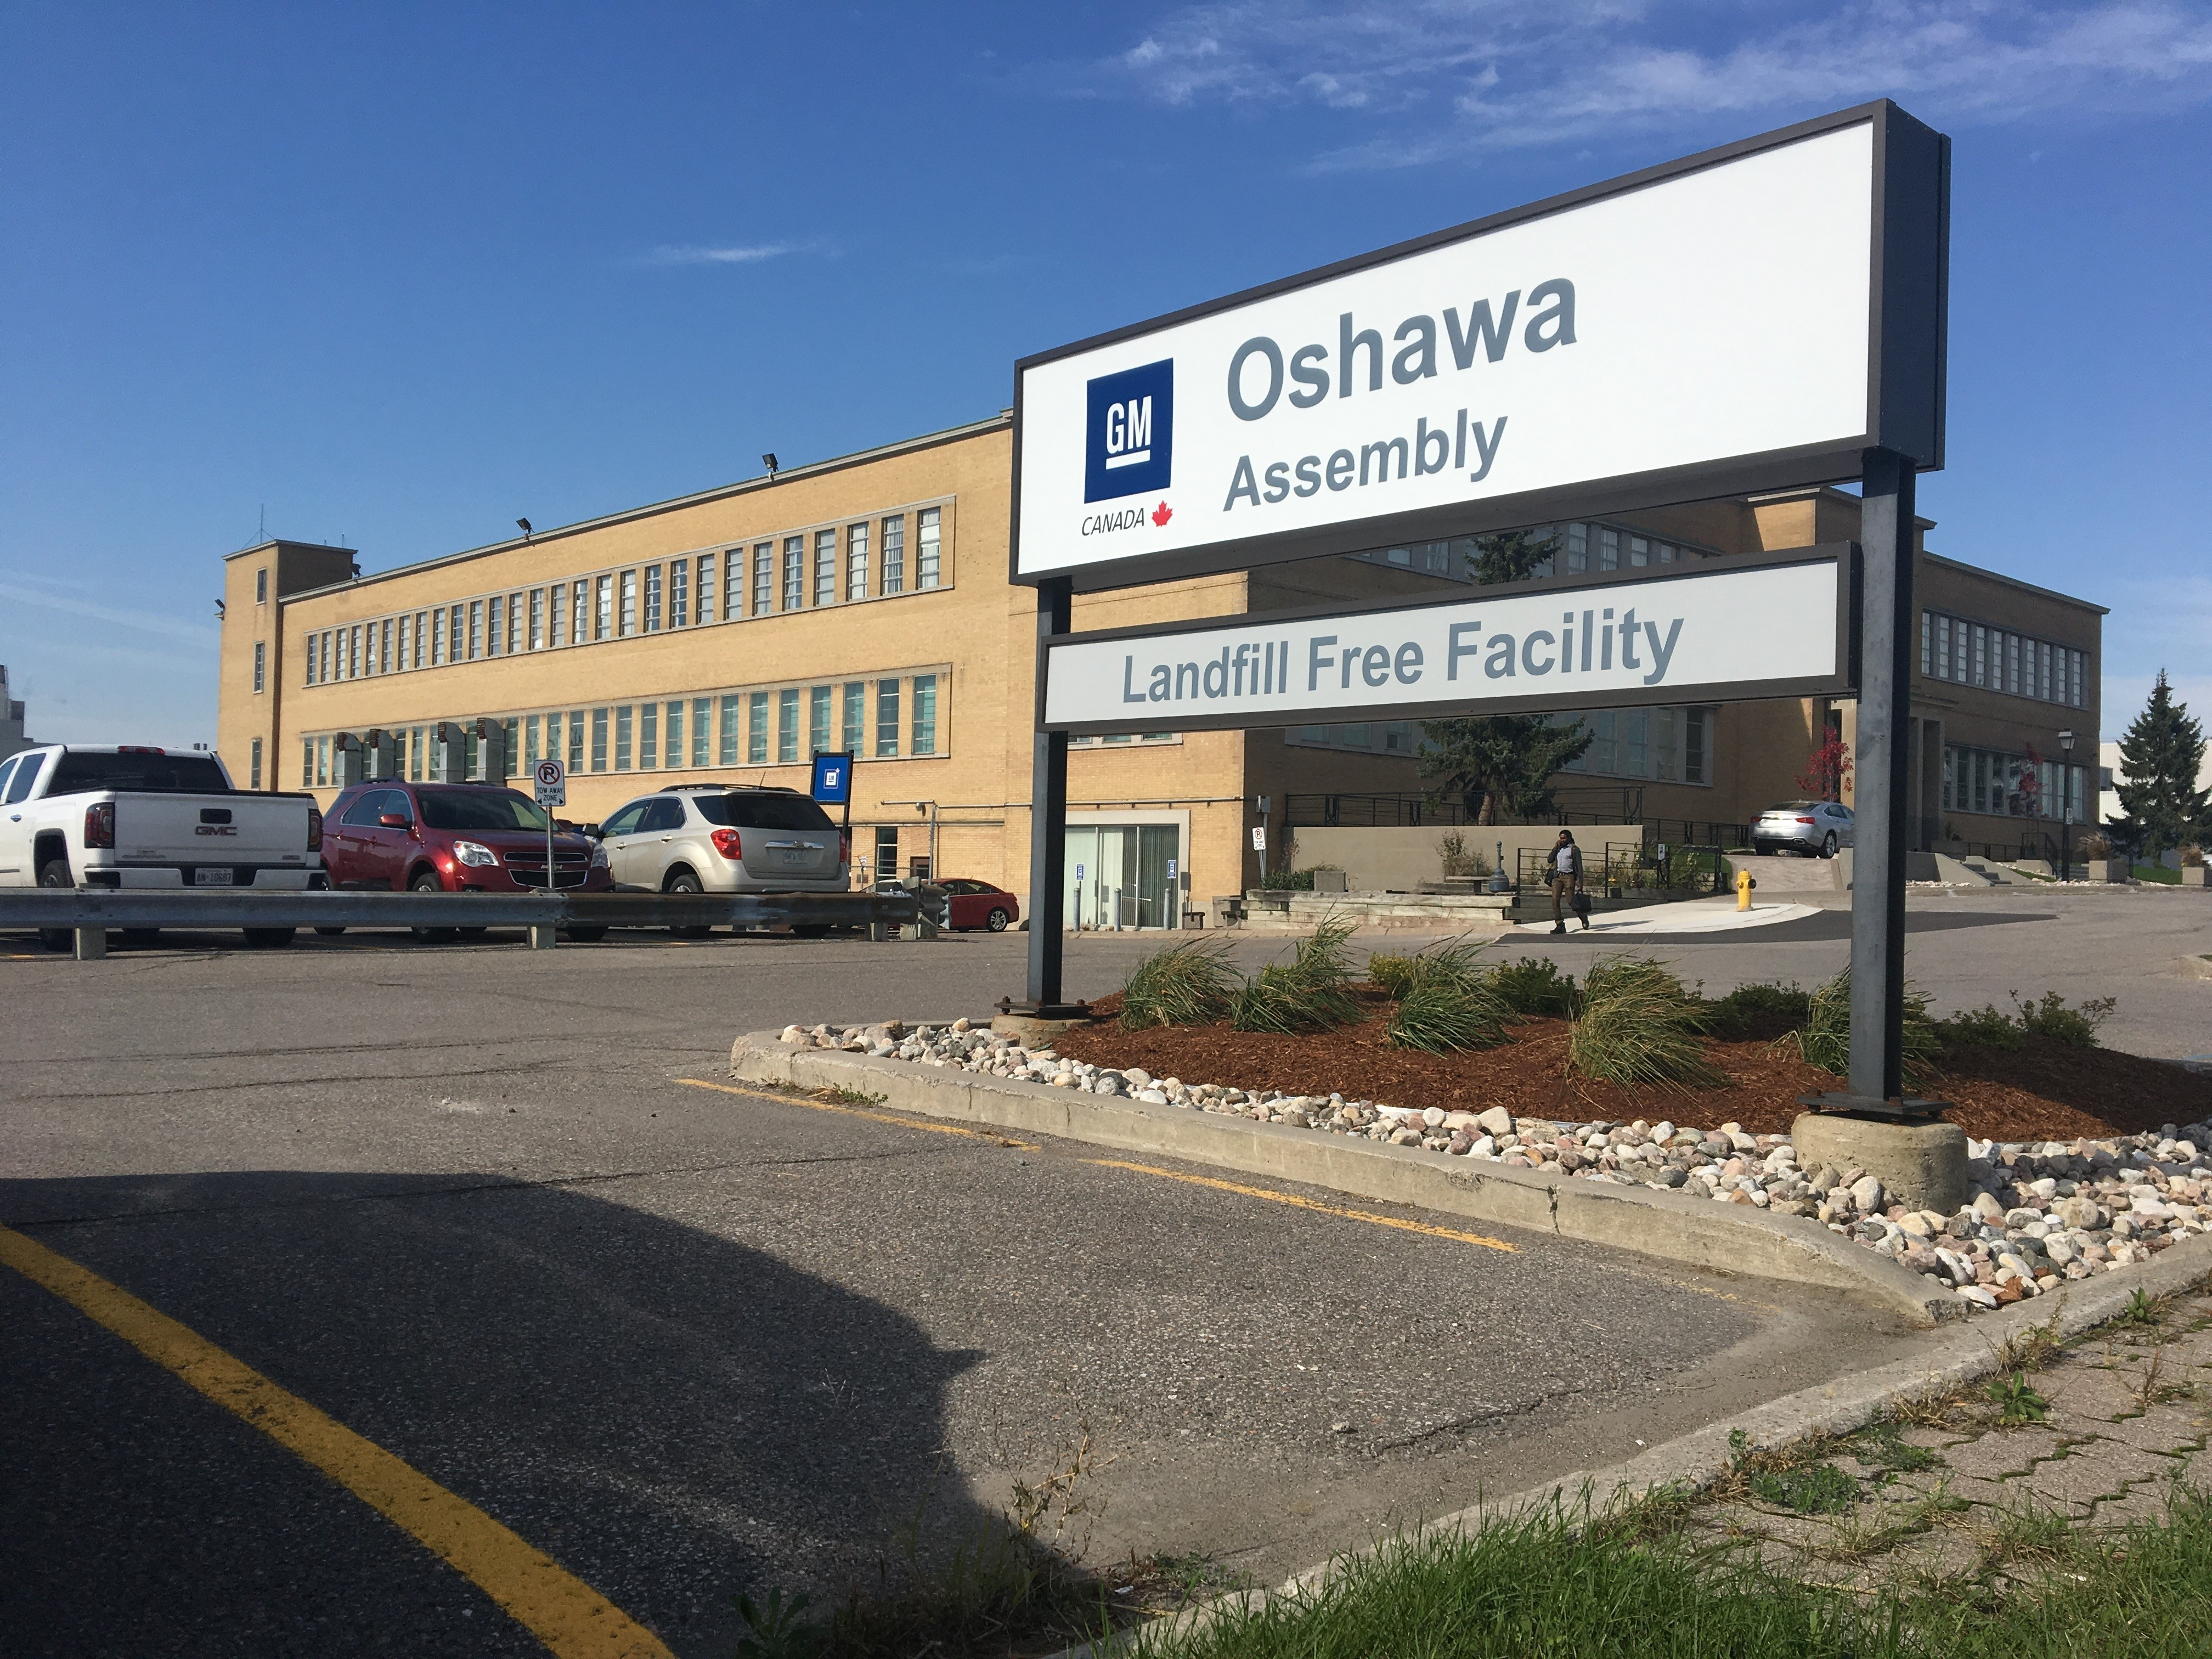 GM, Unifor announce agreement that will save 300 jobs at Oshawa plant